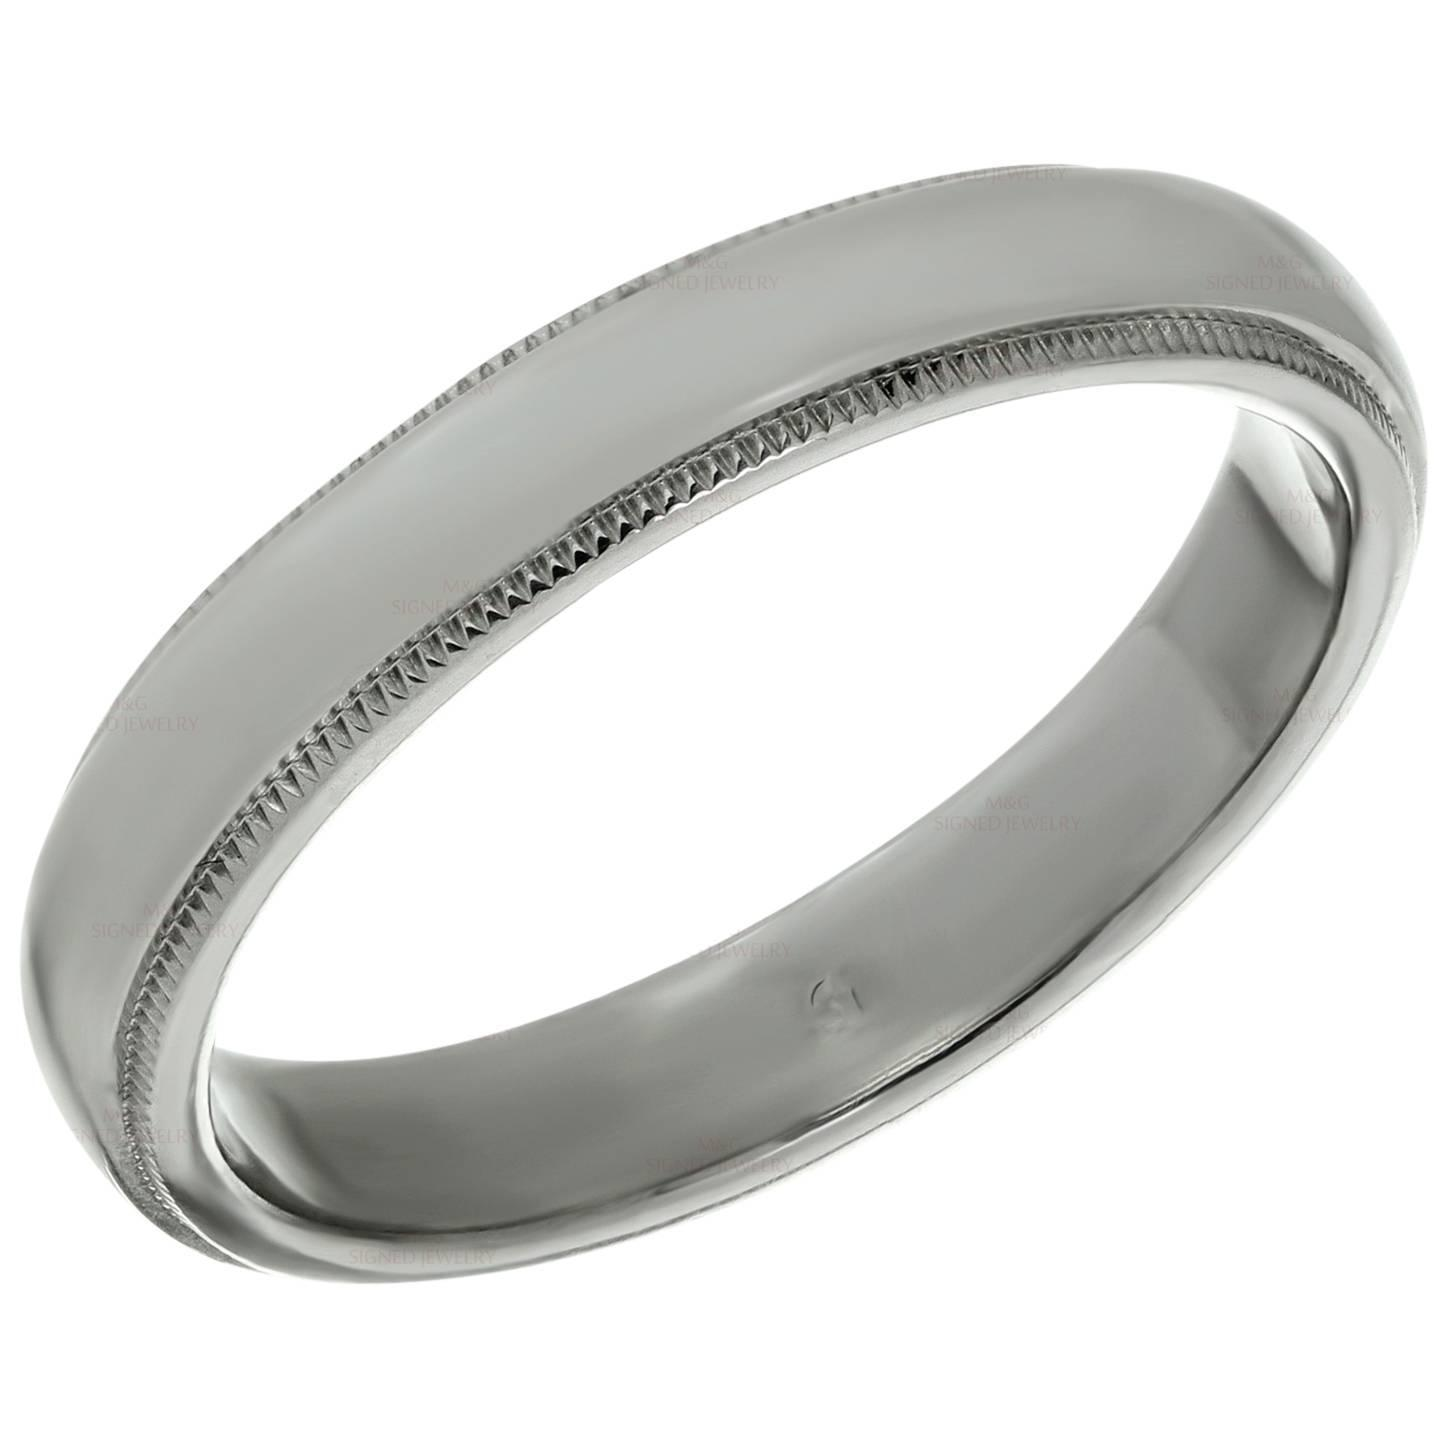 Tiffany and Co Platinum Milgrain Men s Wedding Band Ring For Sale